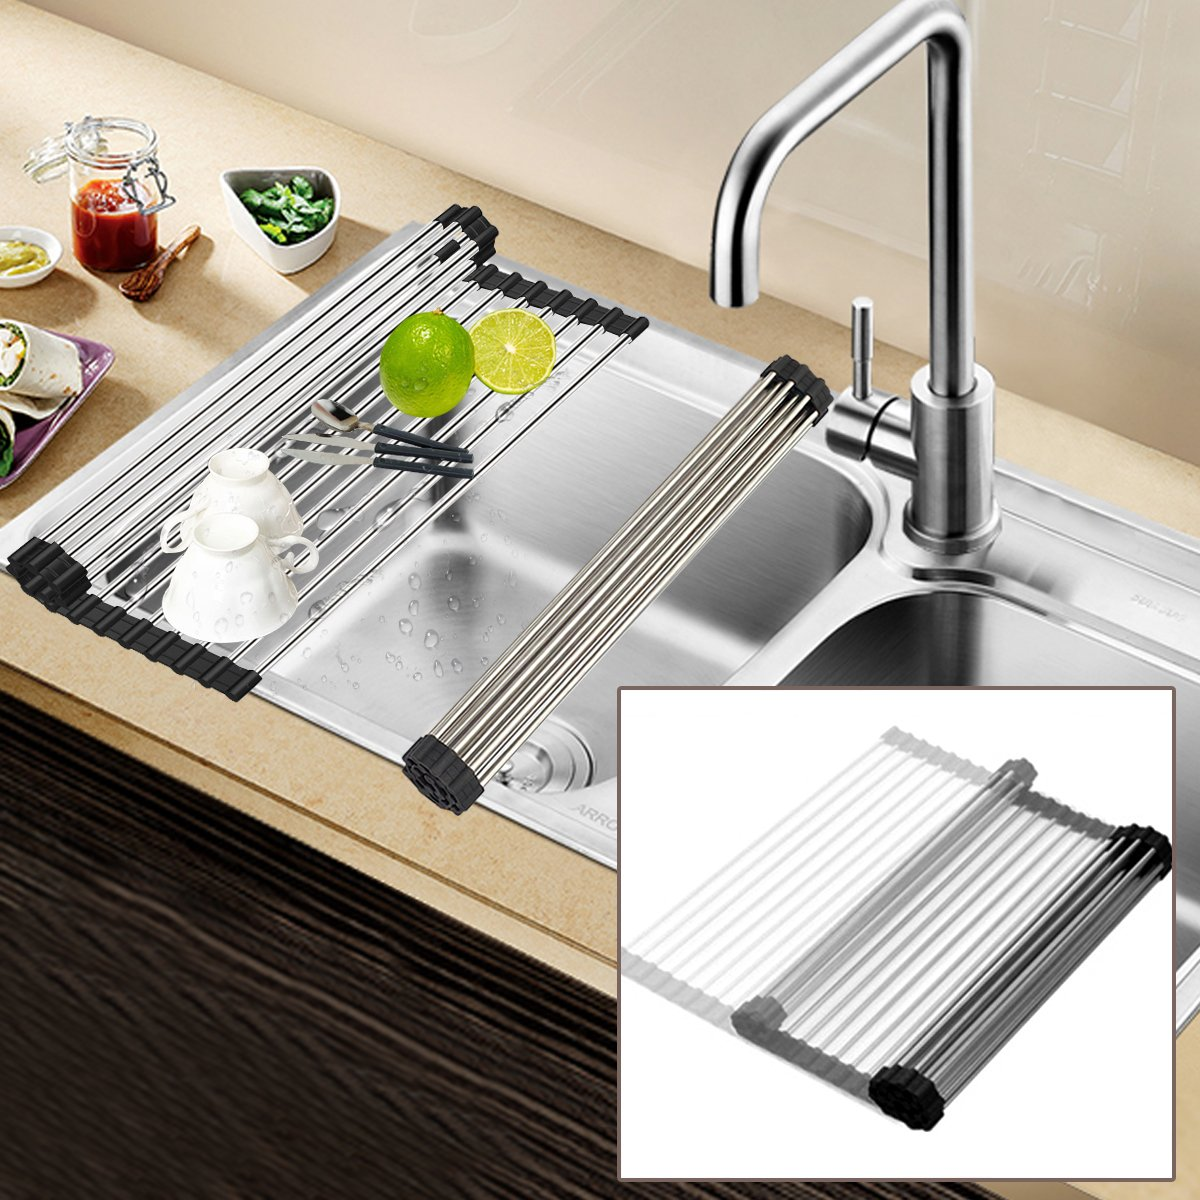 Get Quotations · Foldable Roll Up Dish Drying Rack, Multi Purpose Heat  Resistant Stainless Steel Over